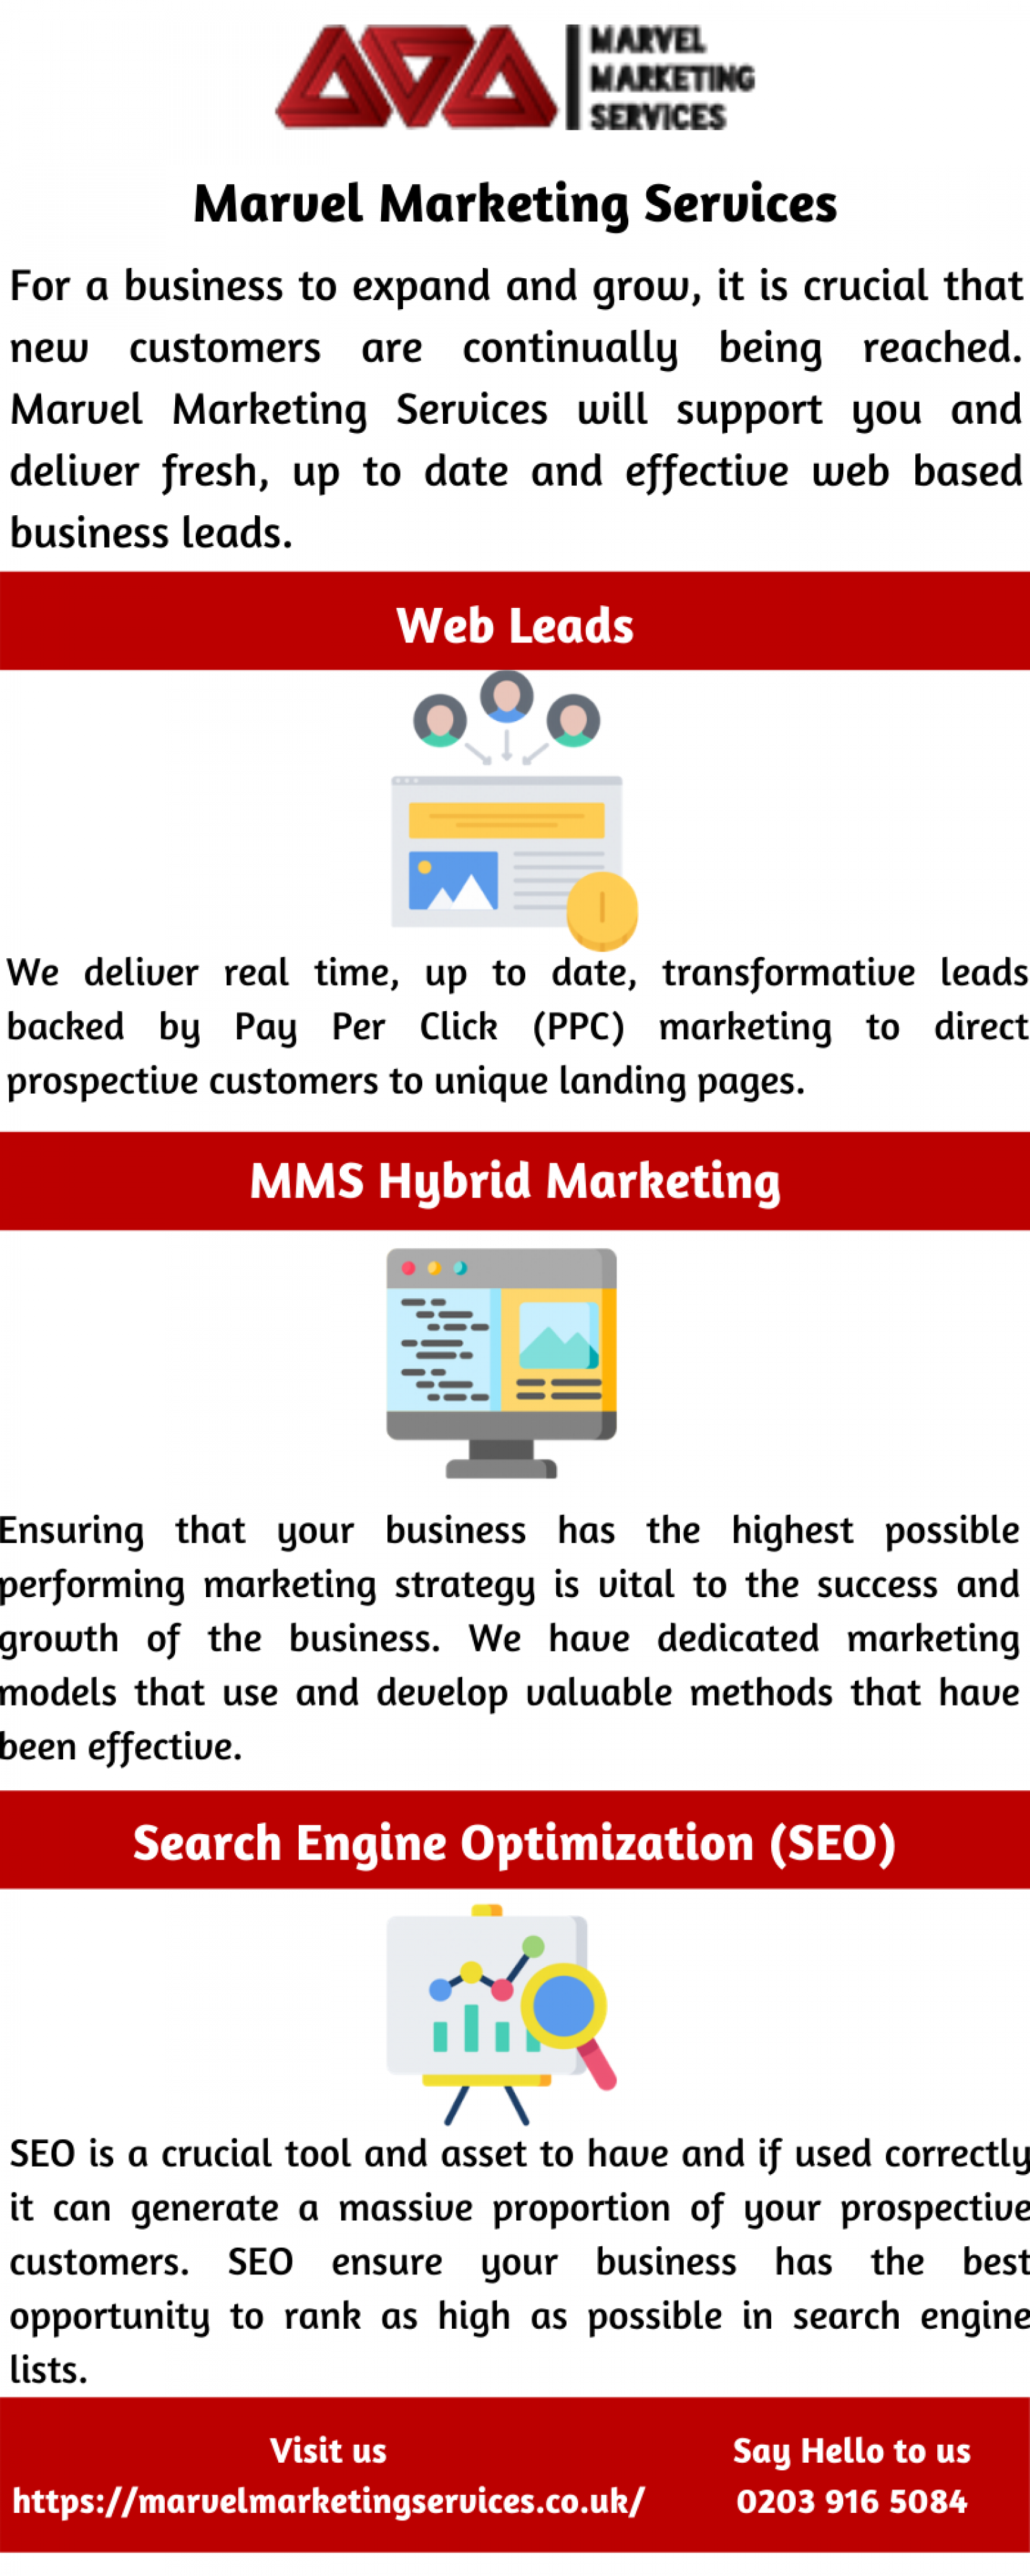 Lead Generation   Web Generated Leads   Marvel Marketing Services Infographic